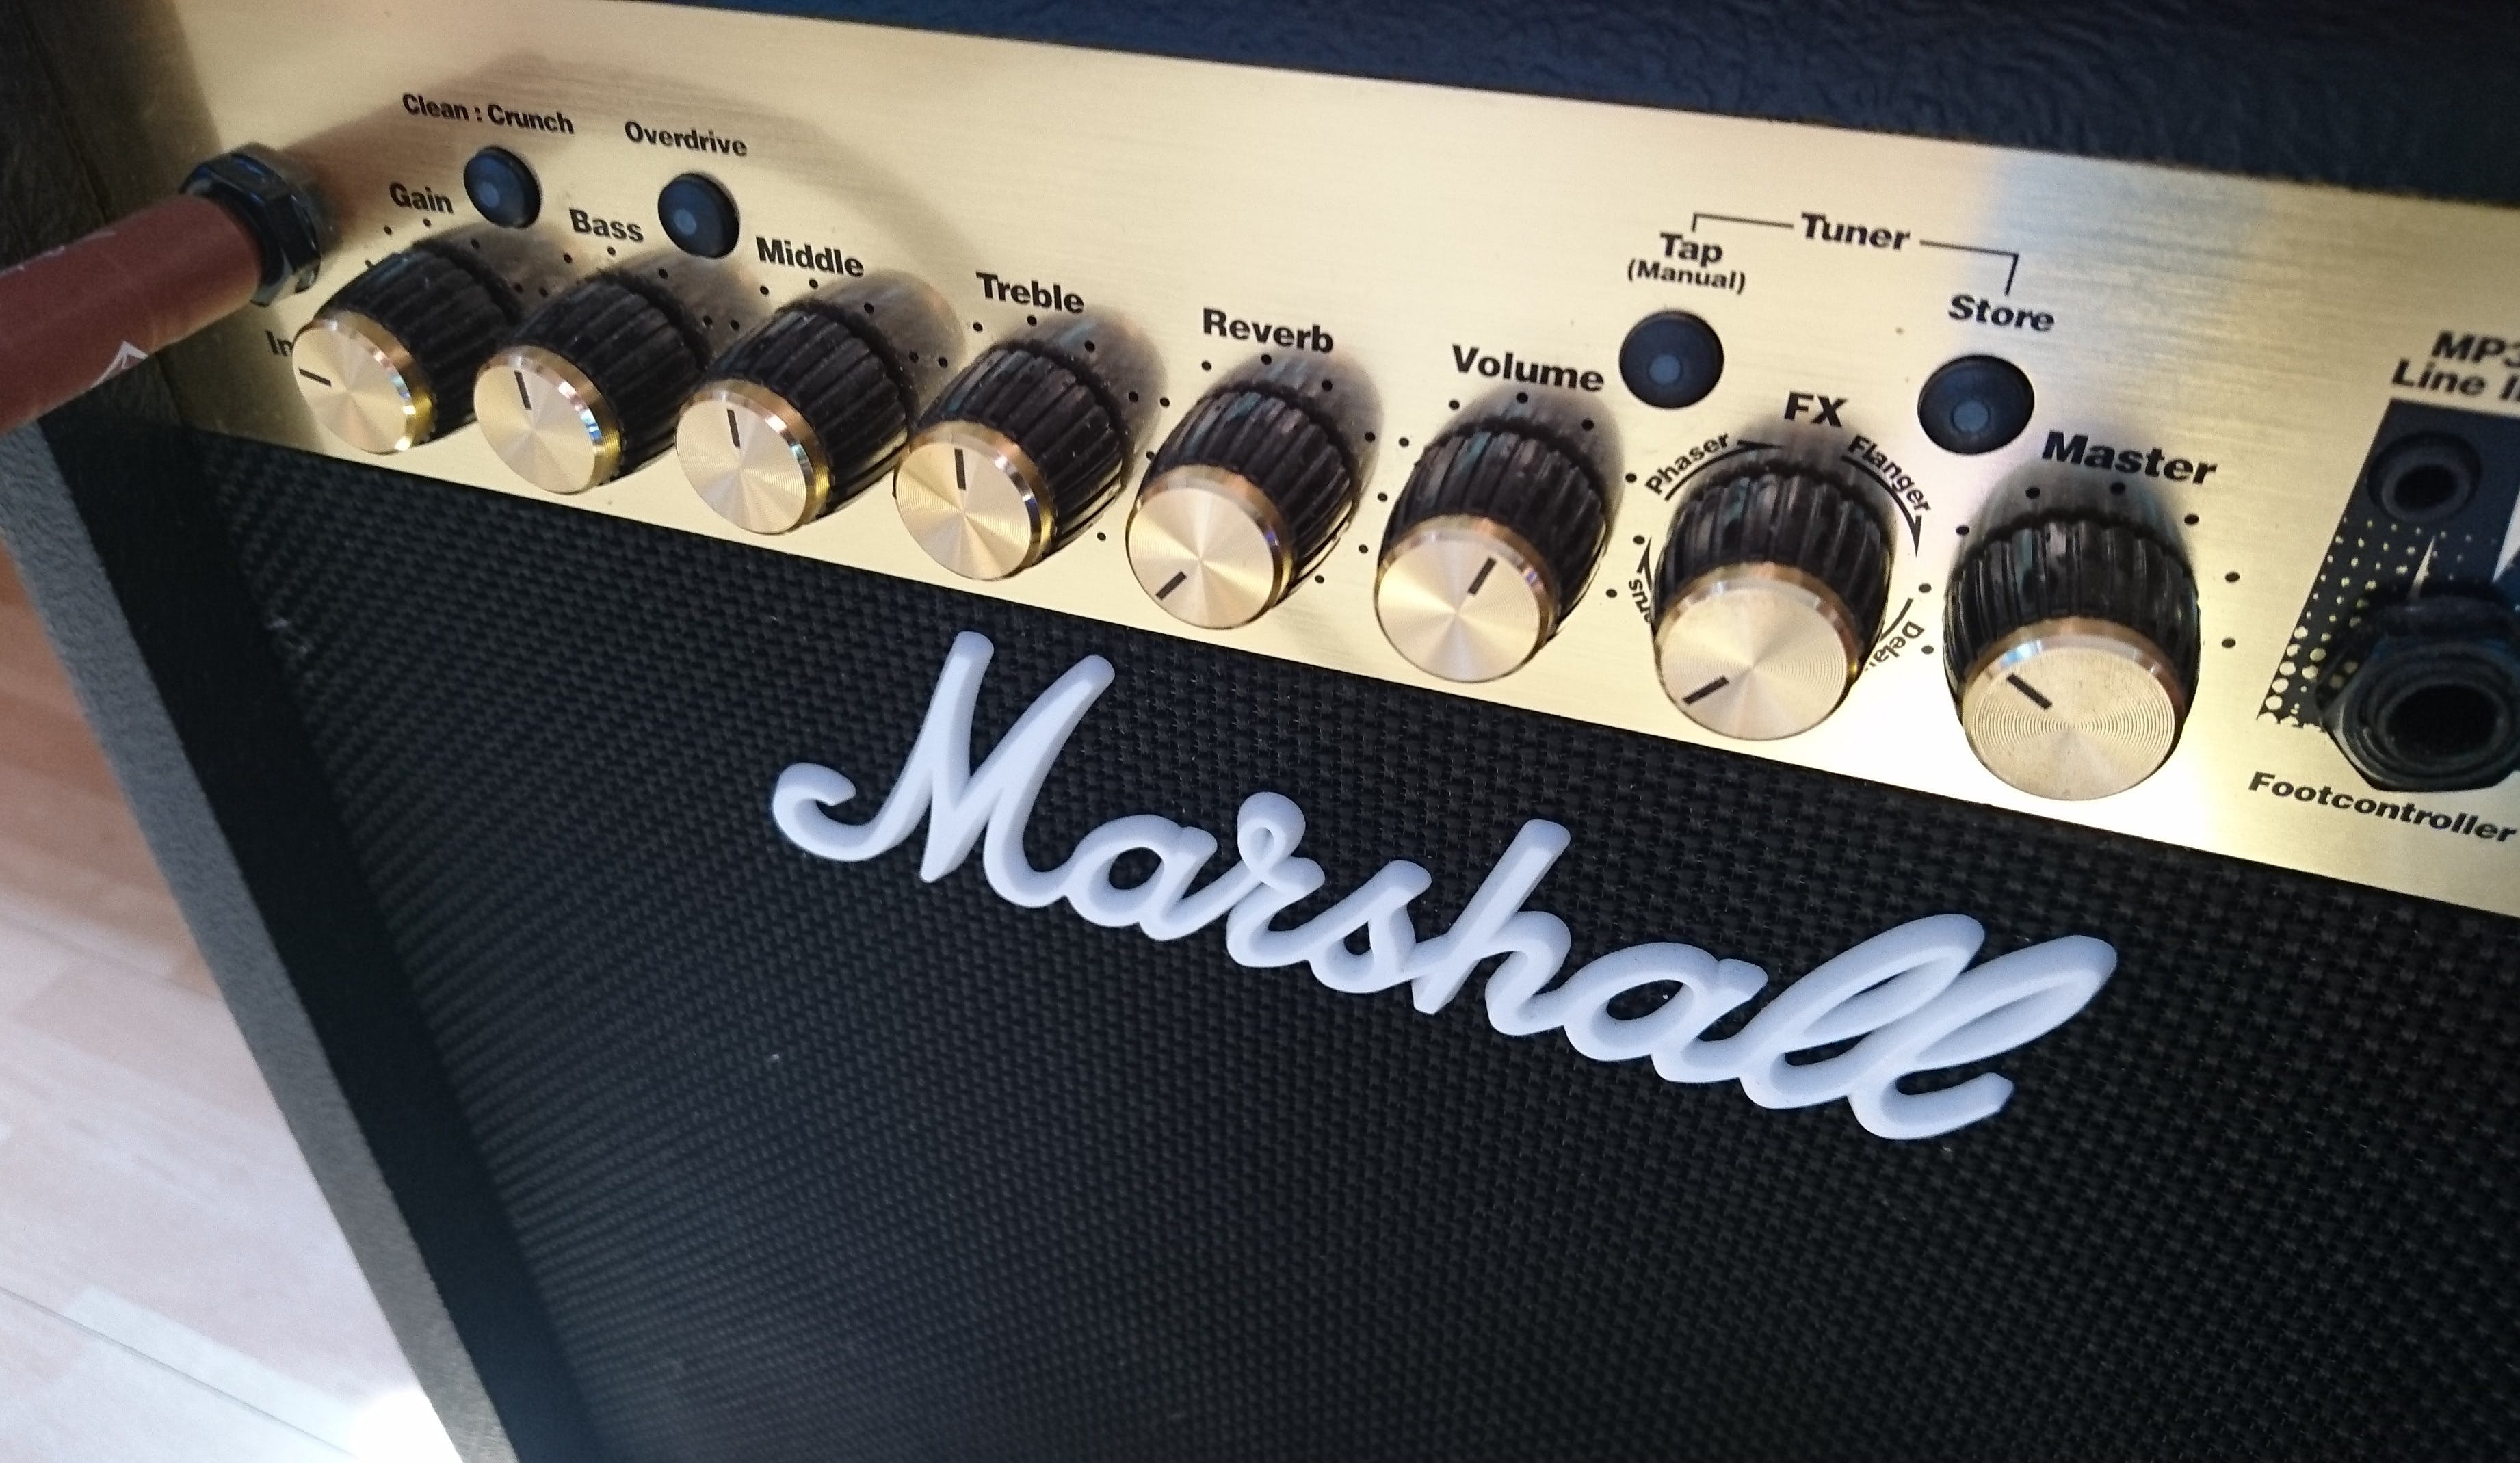 Black and Silver Marshall Guitar Amplifier